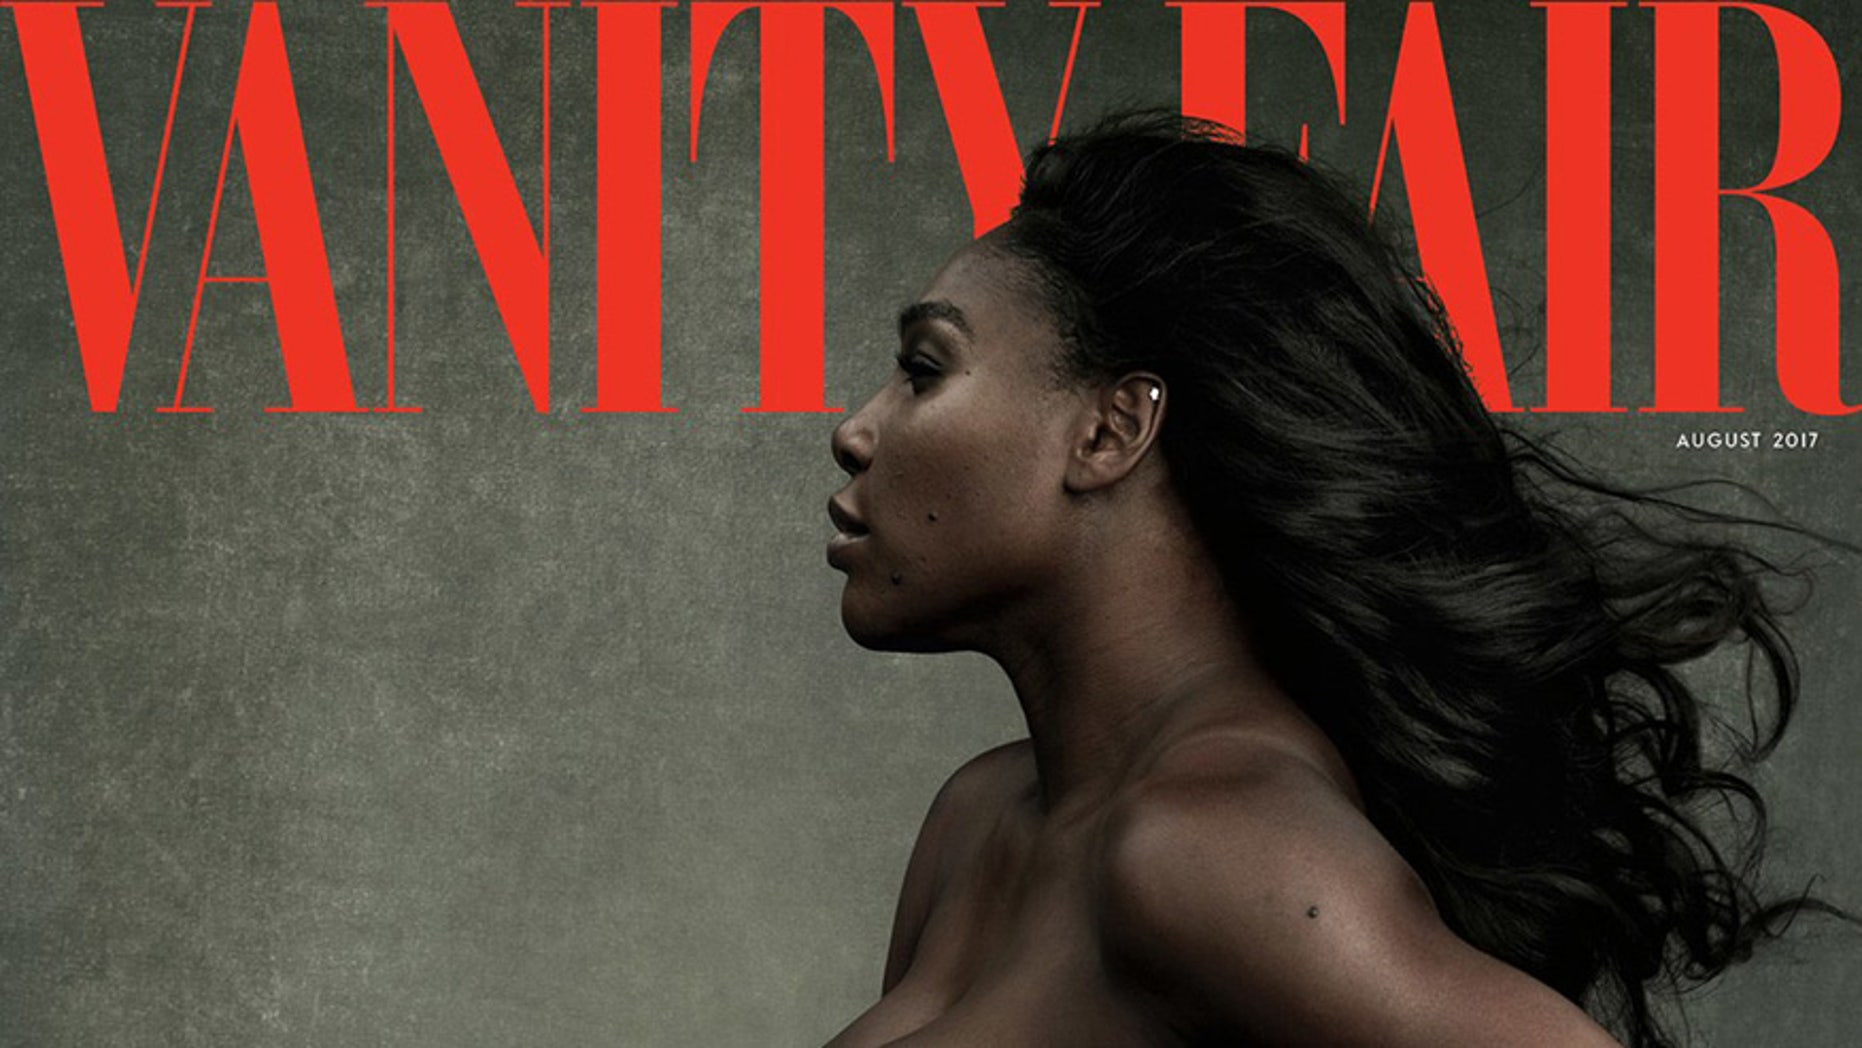 This image made by Annie Leibovitz exclusively for Vanity Fair shows the cover of the August edition of the magazine, unveiled Tuesday, June 27, 2017, featuring Serena Williams.